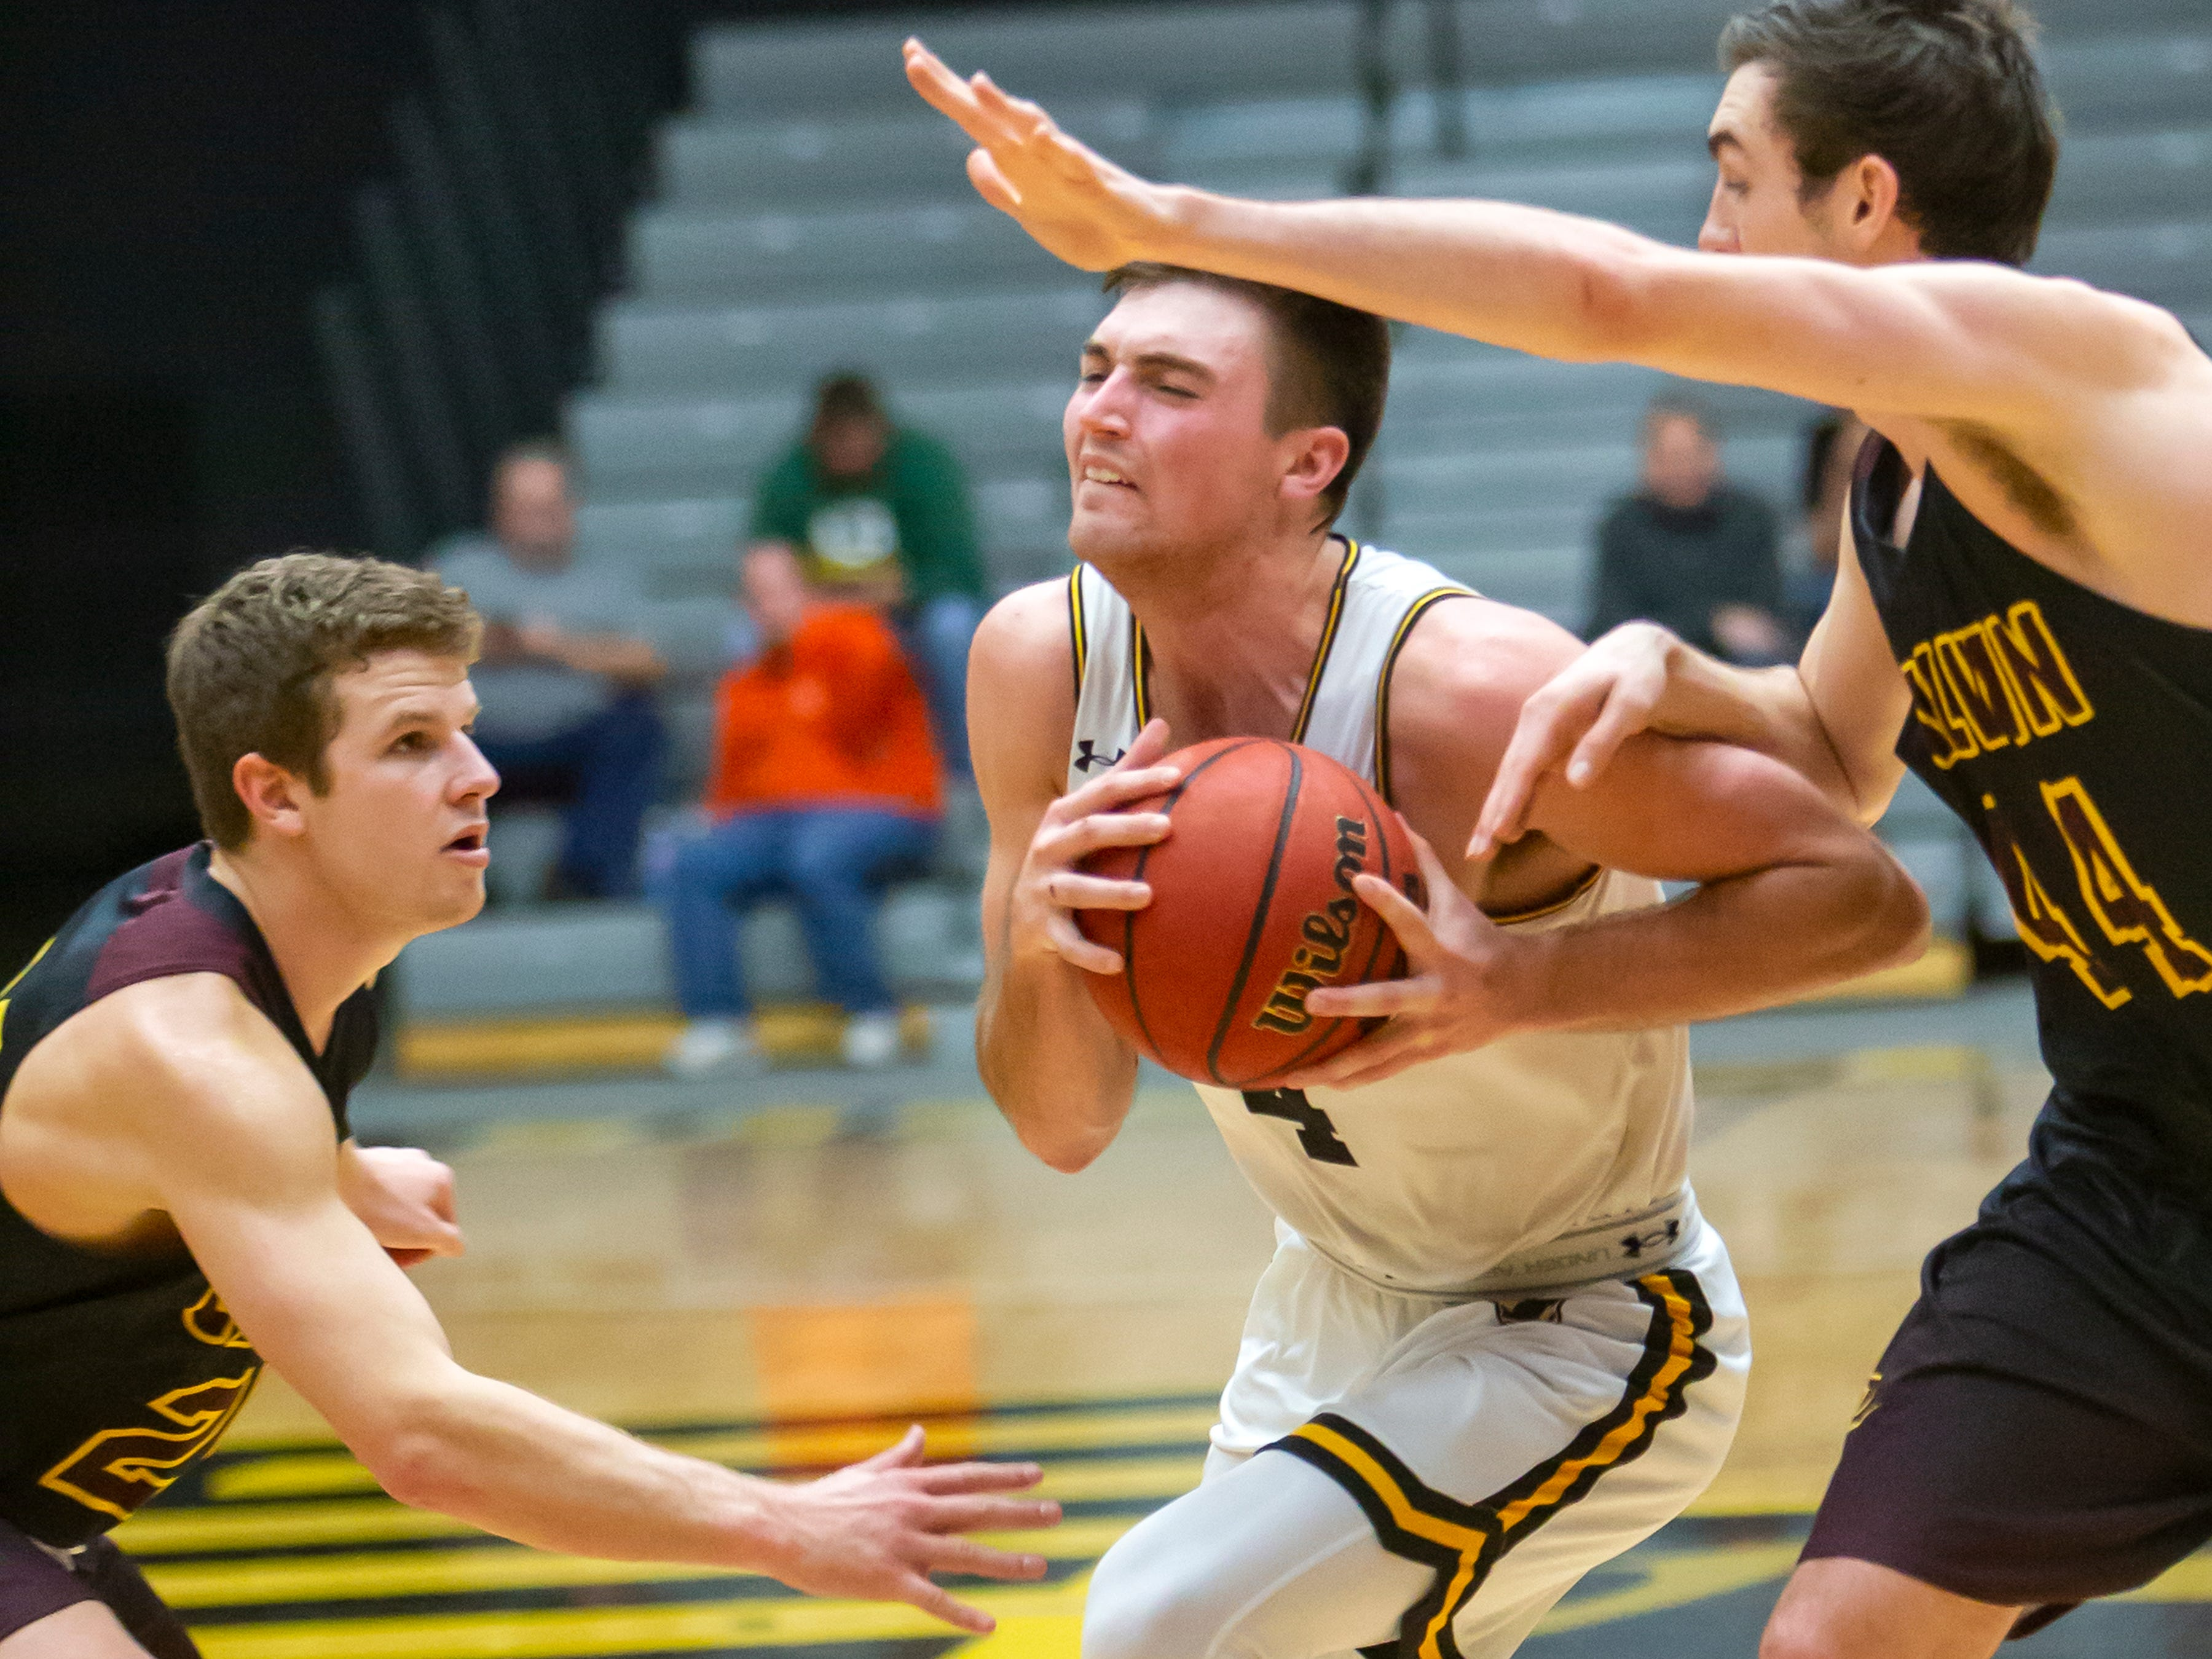 UW-Oshkosh's Brett Wittchow drives the ball between Calvin blockers at the Kolf Sports Center on Saturday, December 8, 2018.